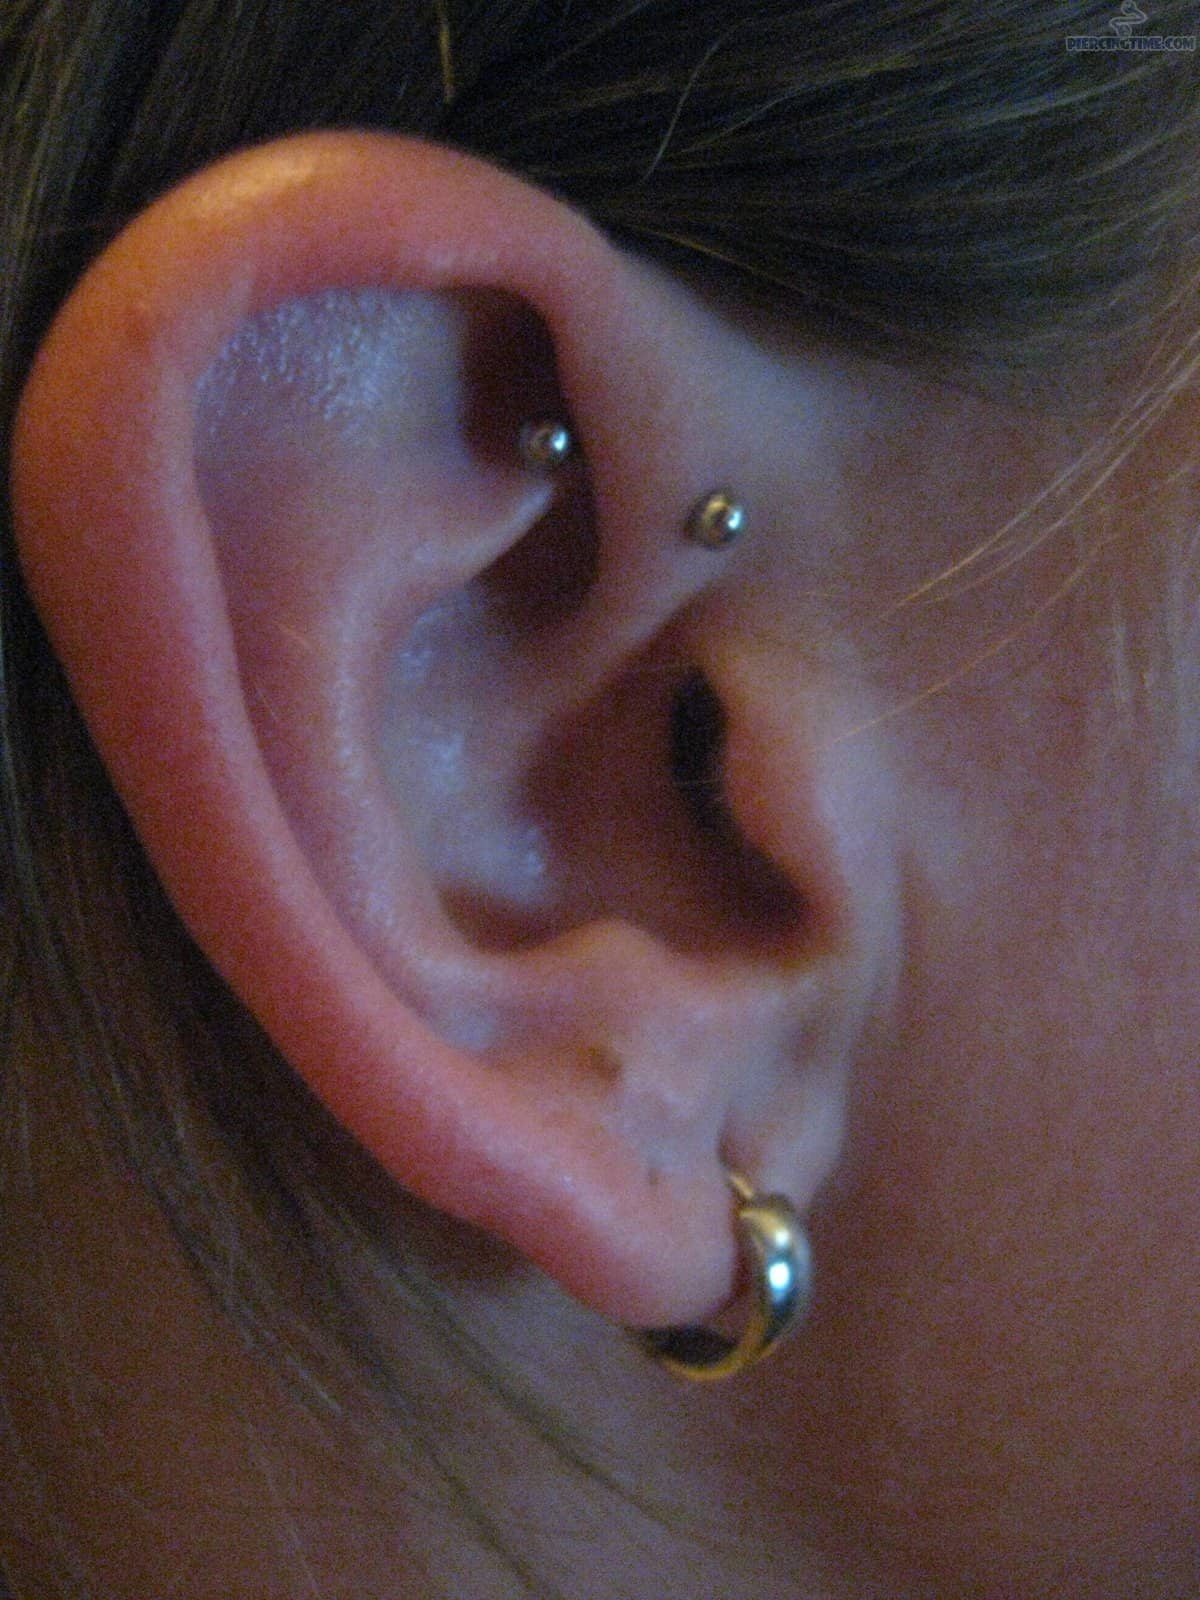 Ear-Lobe-And-Daith-Piercing-For-Young-Girls